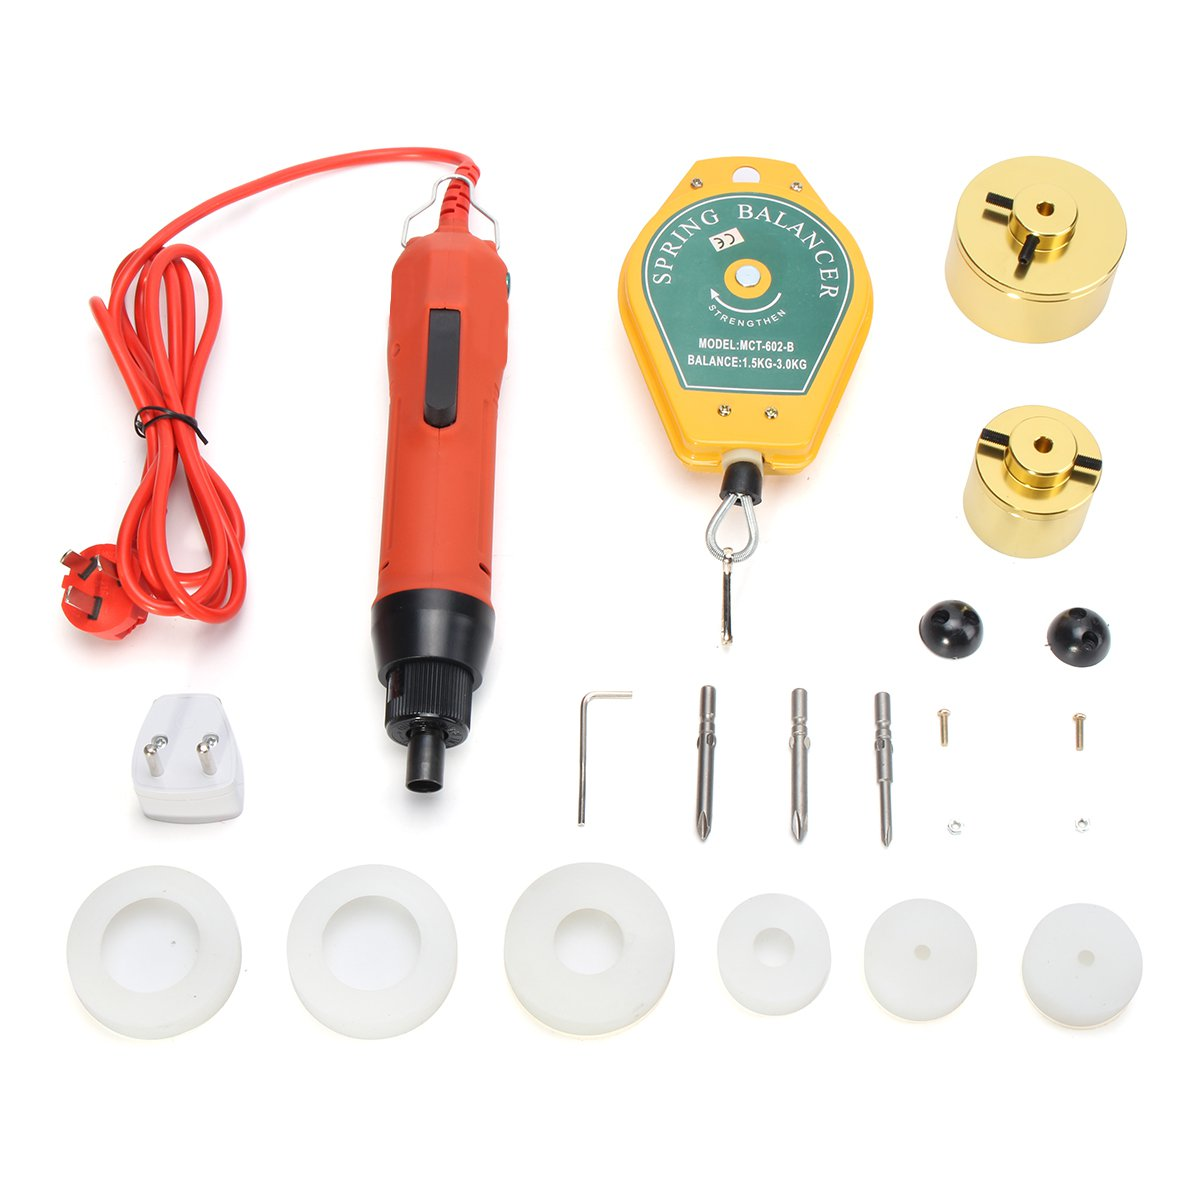 220V Handheld Electric Drill Bottle Capping Machine Tools Set Cap Sealer Seal Ring Machine Food Processor Kitchen Appliances